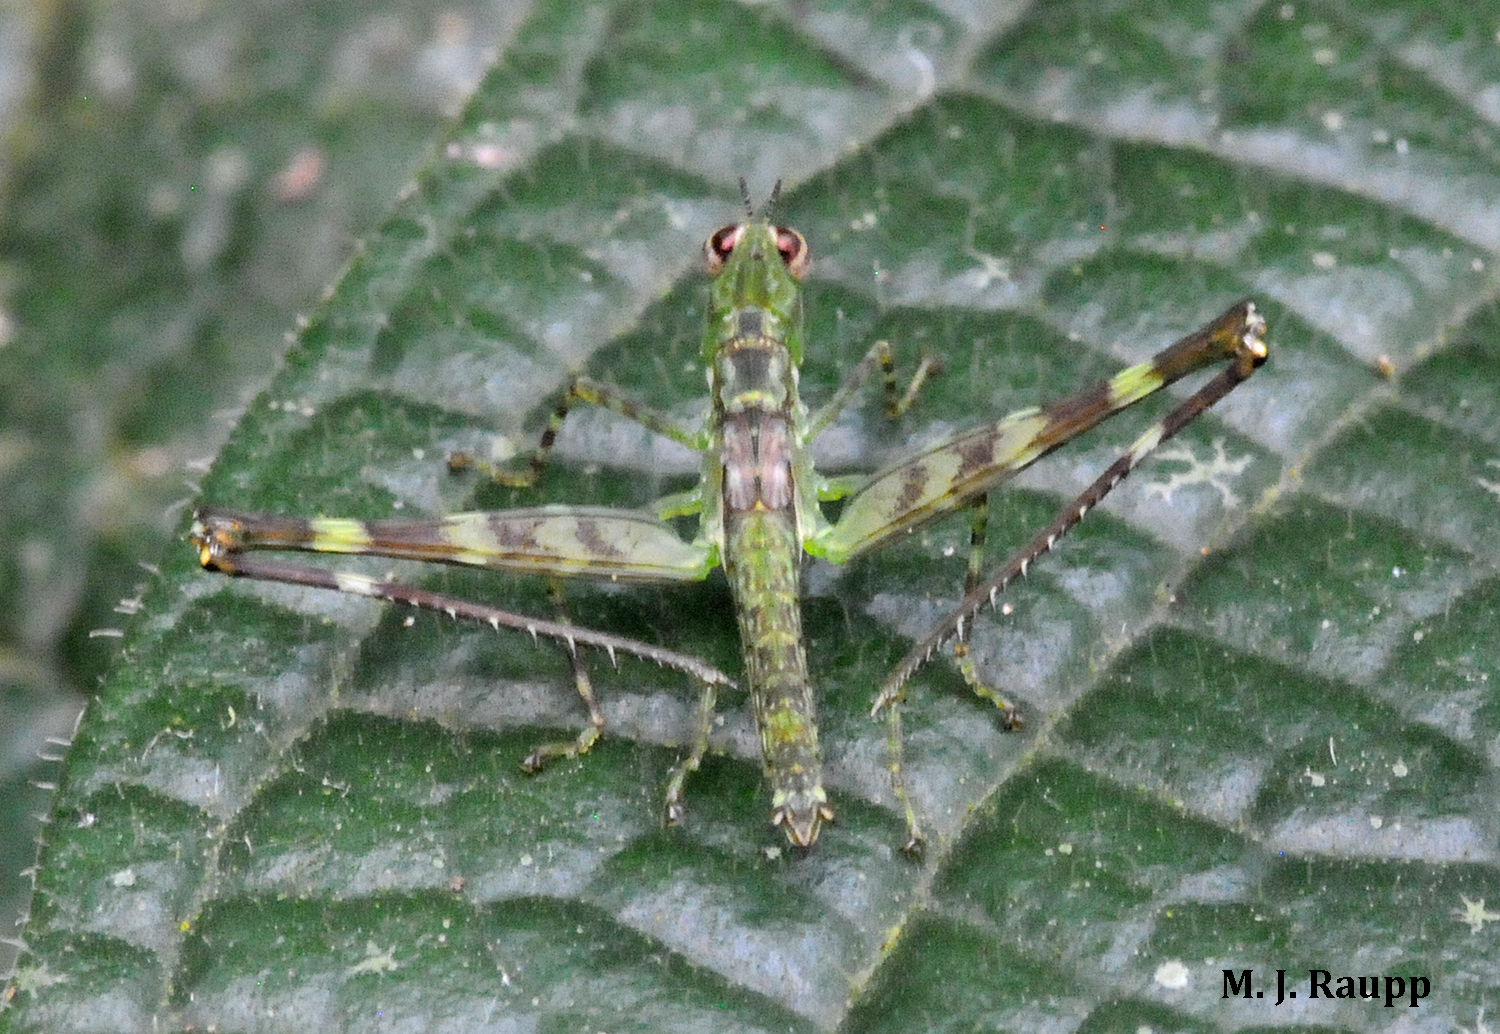 Spines lining the legs of this airplane grasshopper could deliver a surprise to an uninitiated predator.